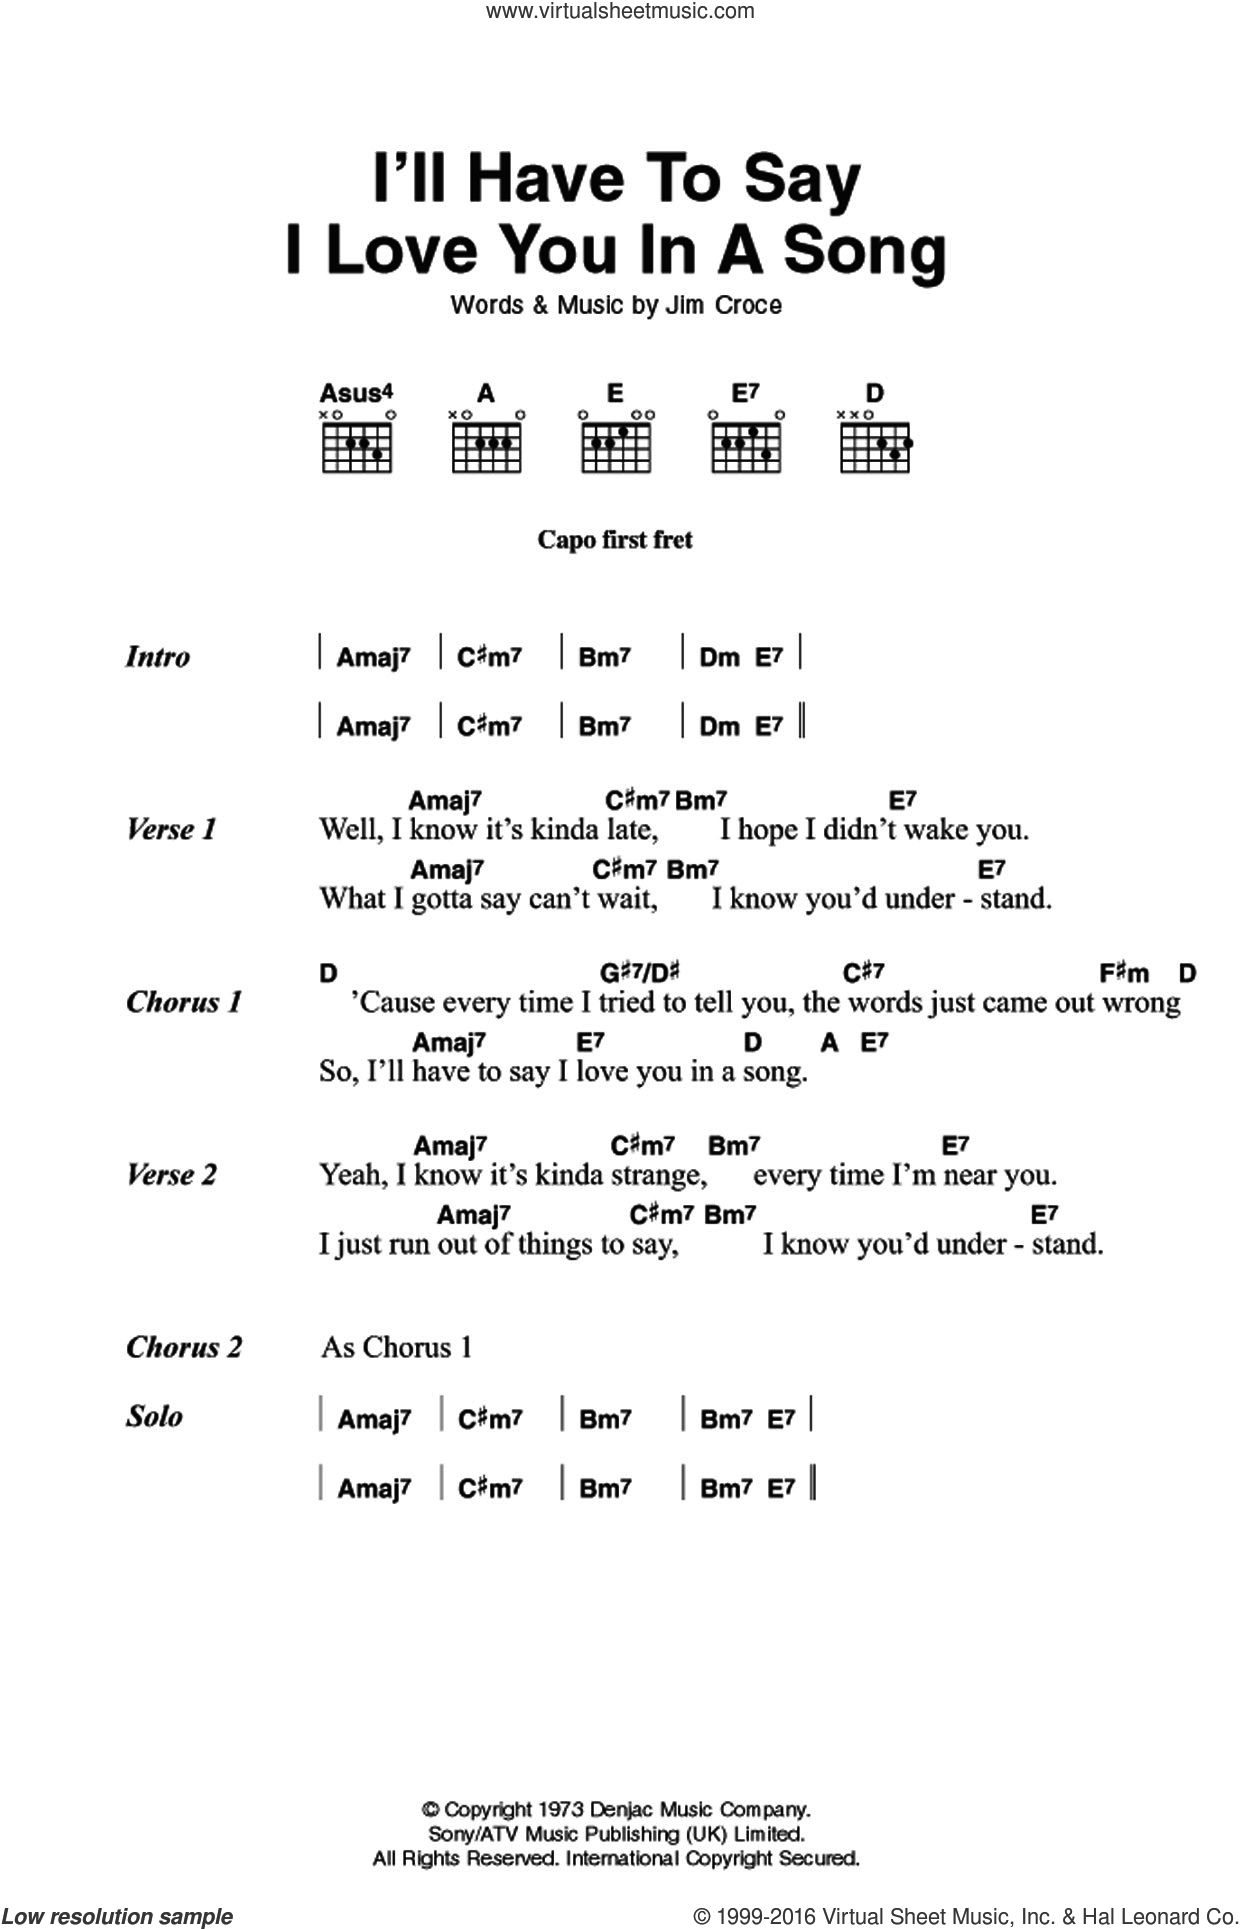 I'll Have To Say I Love You In A Song sheet music for guitar (chords) by Jim Croce